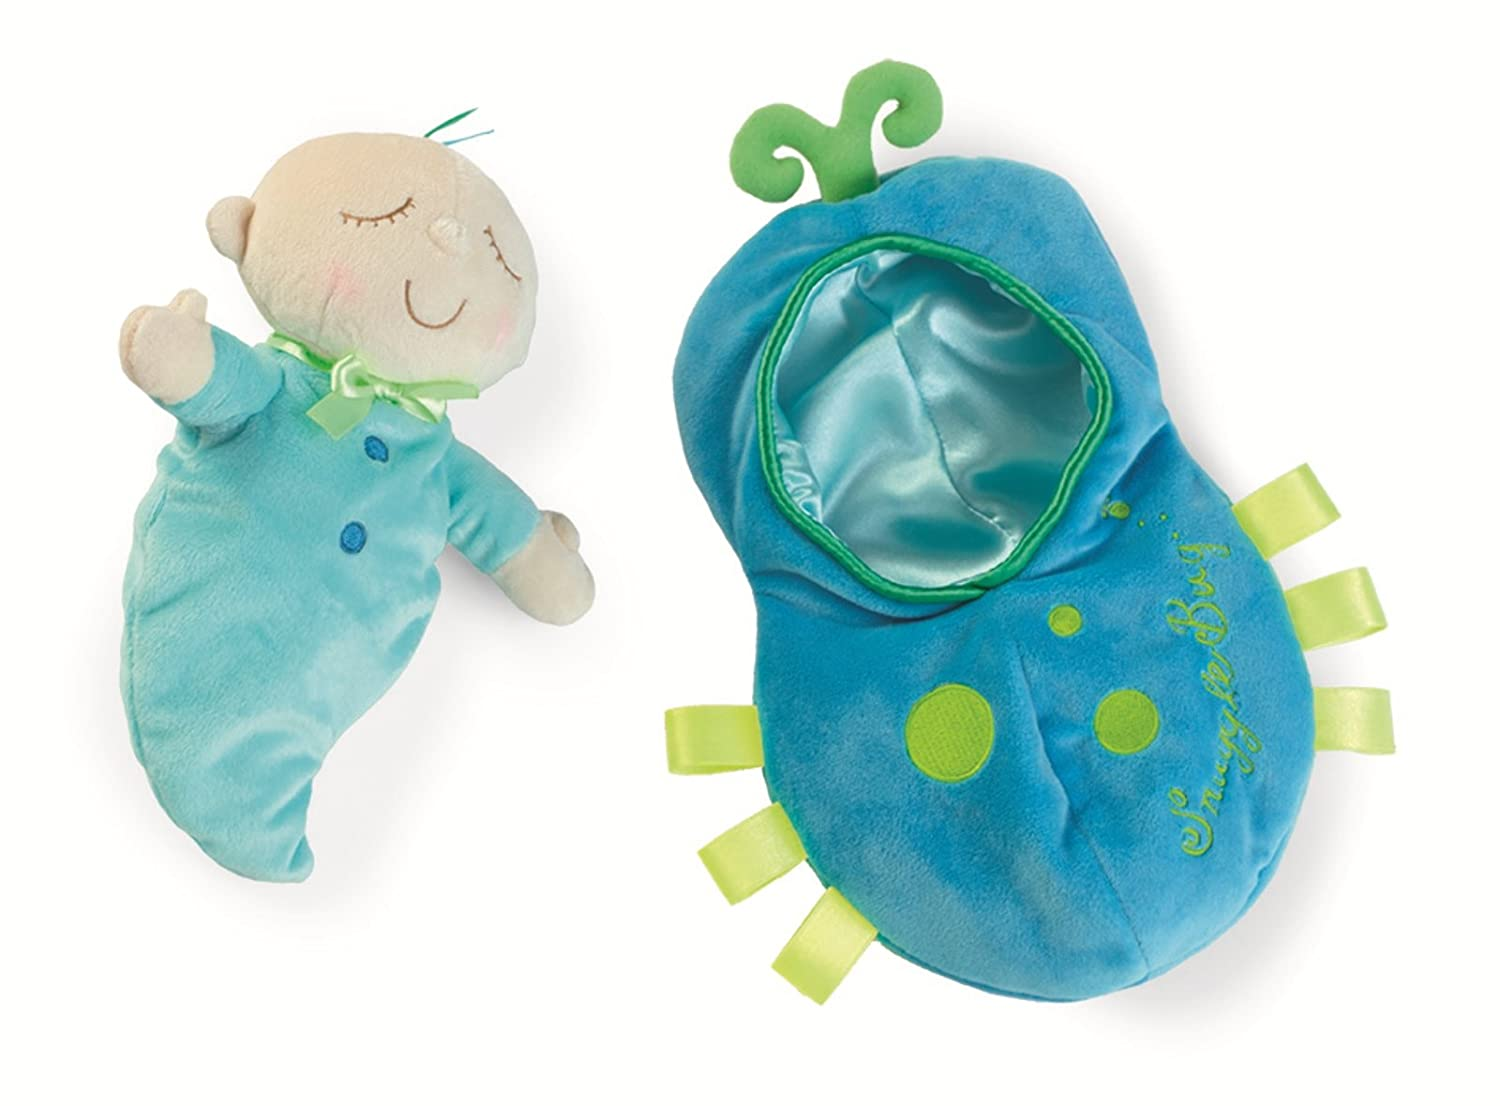 Best Baby Gifts for a 7 month old: Snuggle Baby